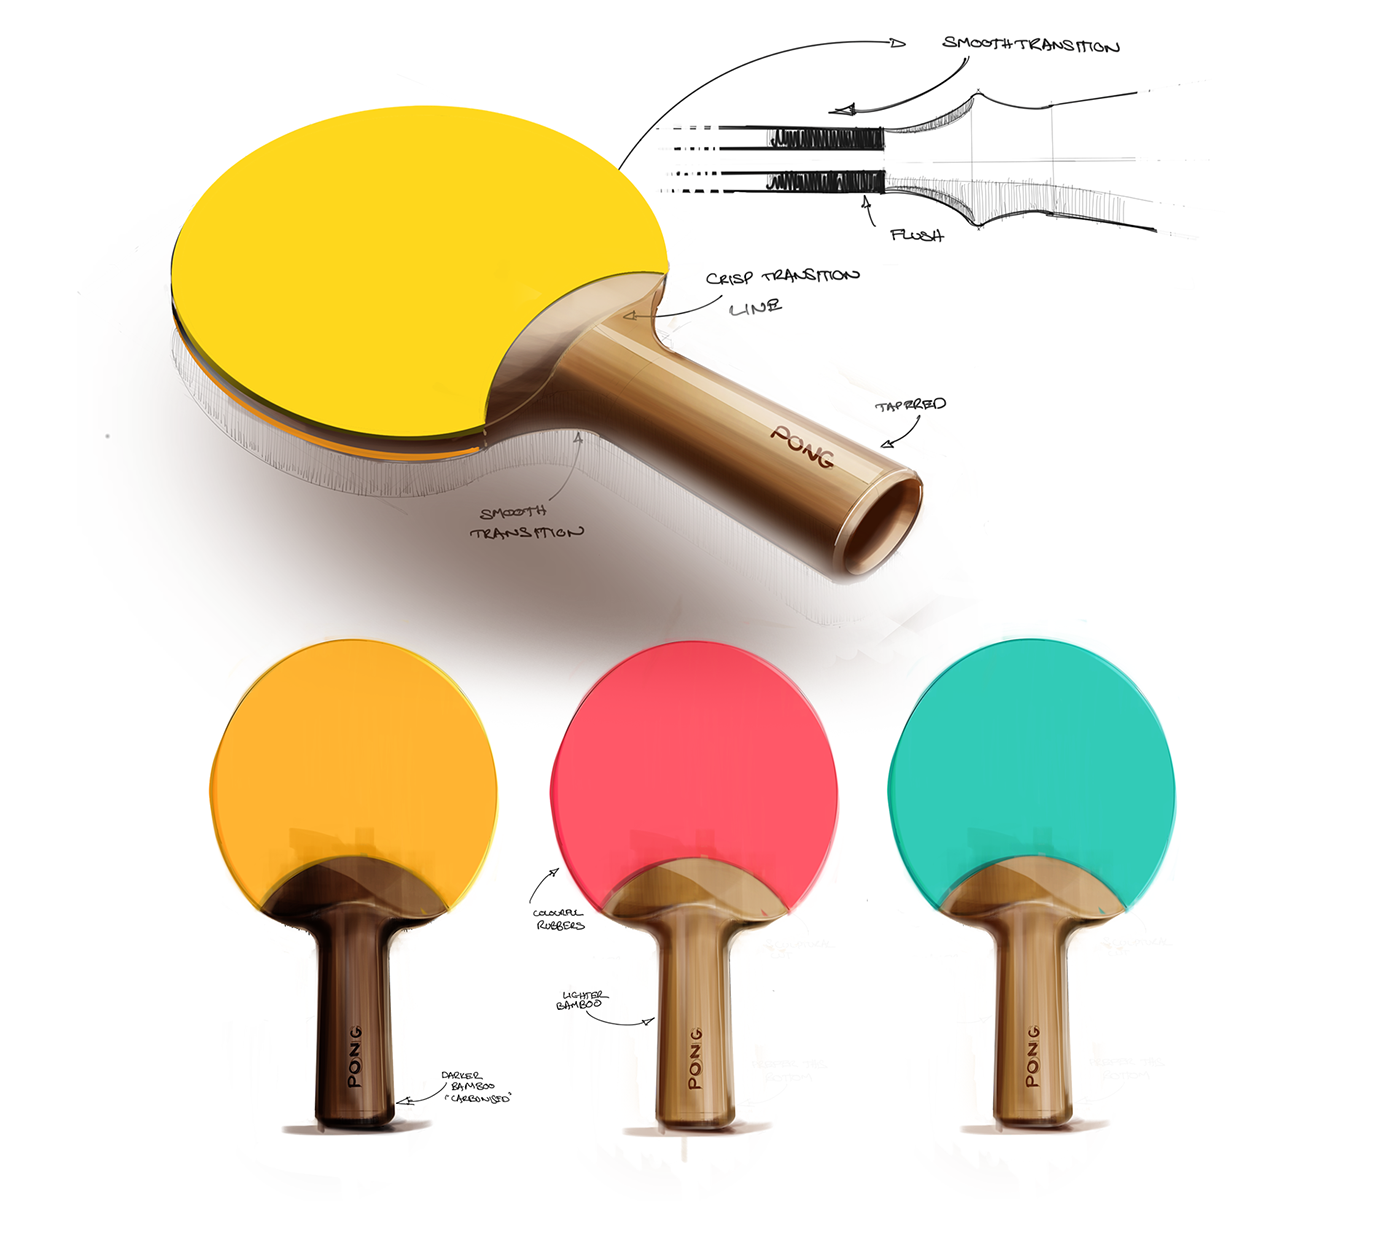 Recycled table tennis paddle sketch